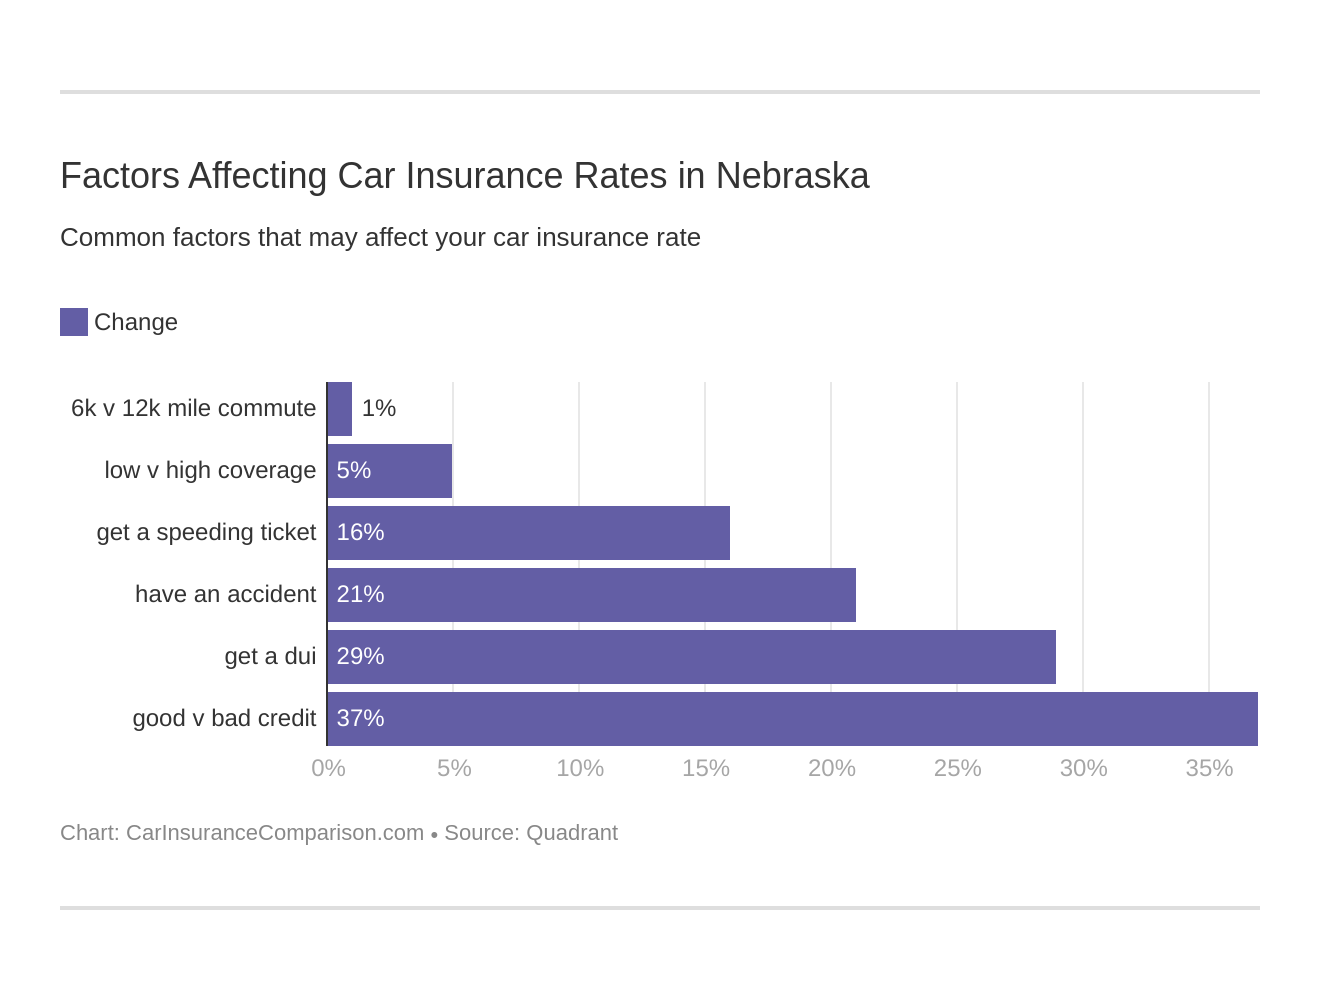 Factors Affecting Car Insurance Rates in Nebraska